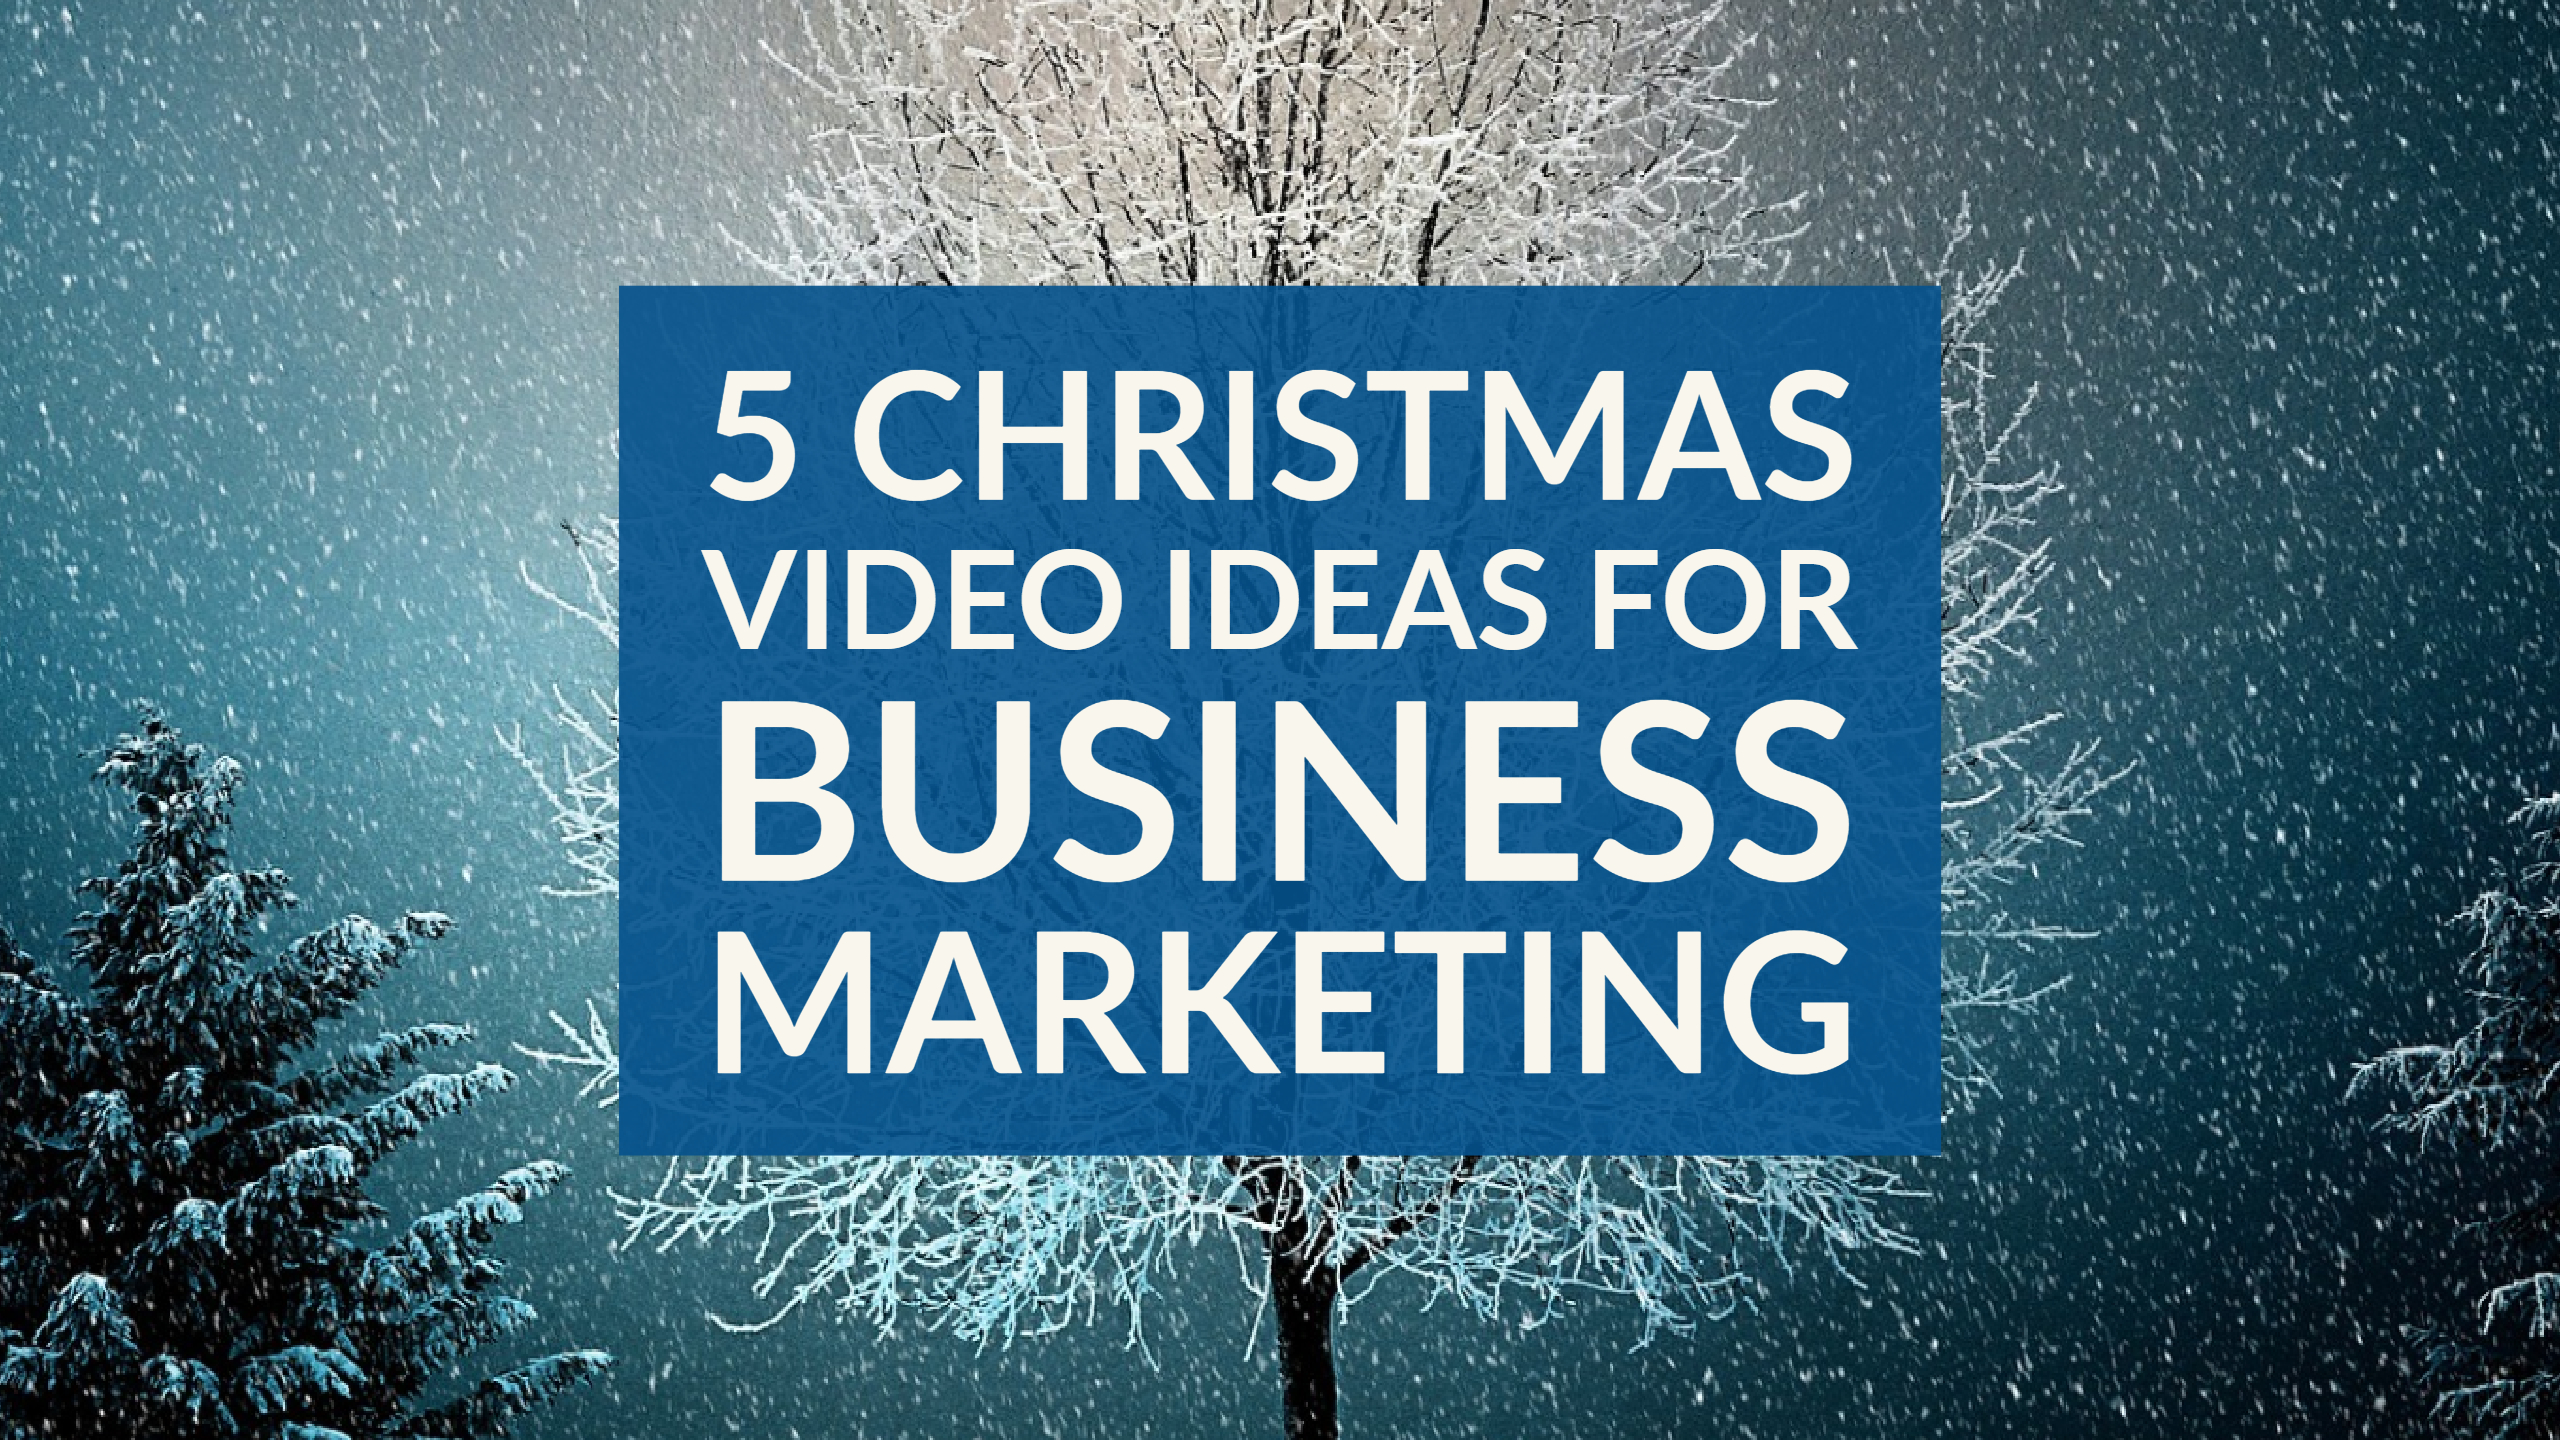 5 Best Christmas Video Ideas For Holiday Business Marketing